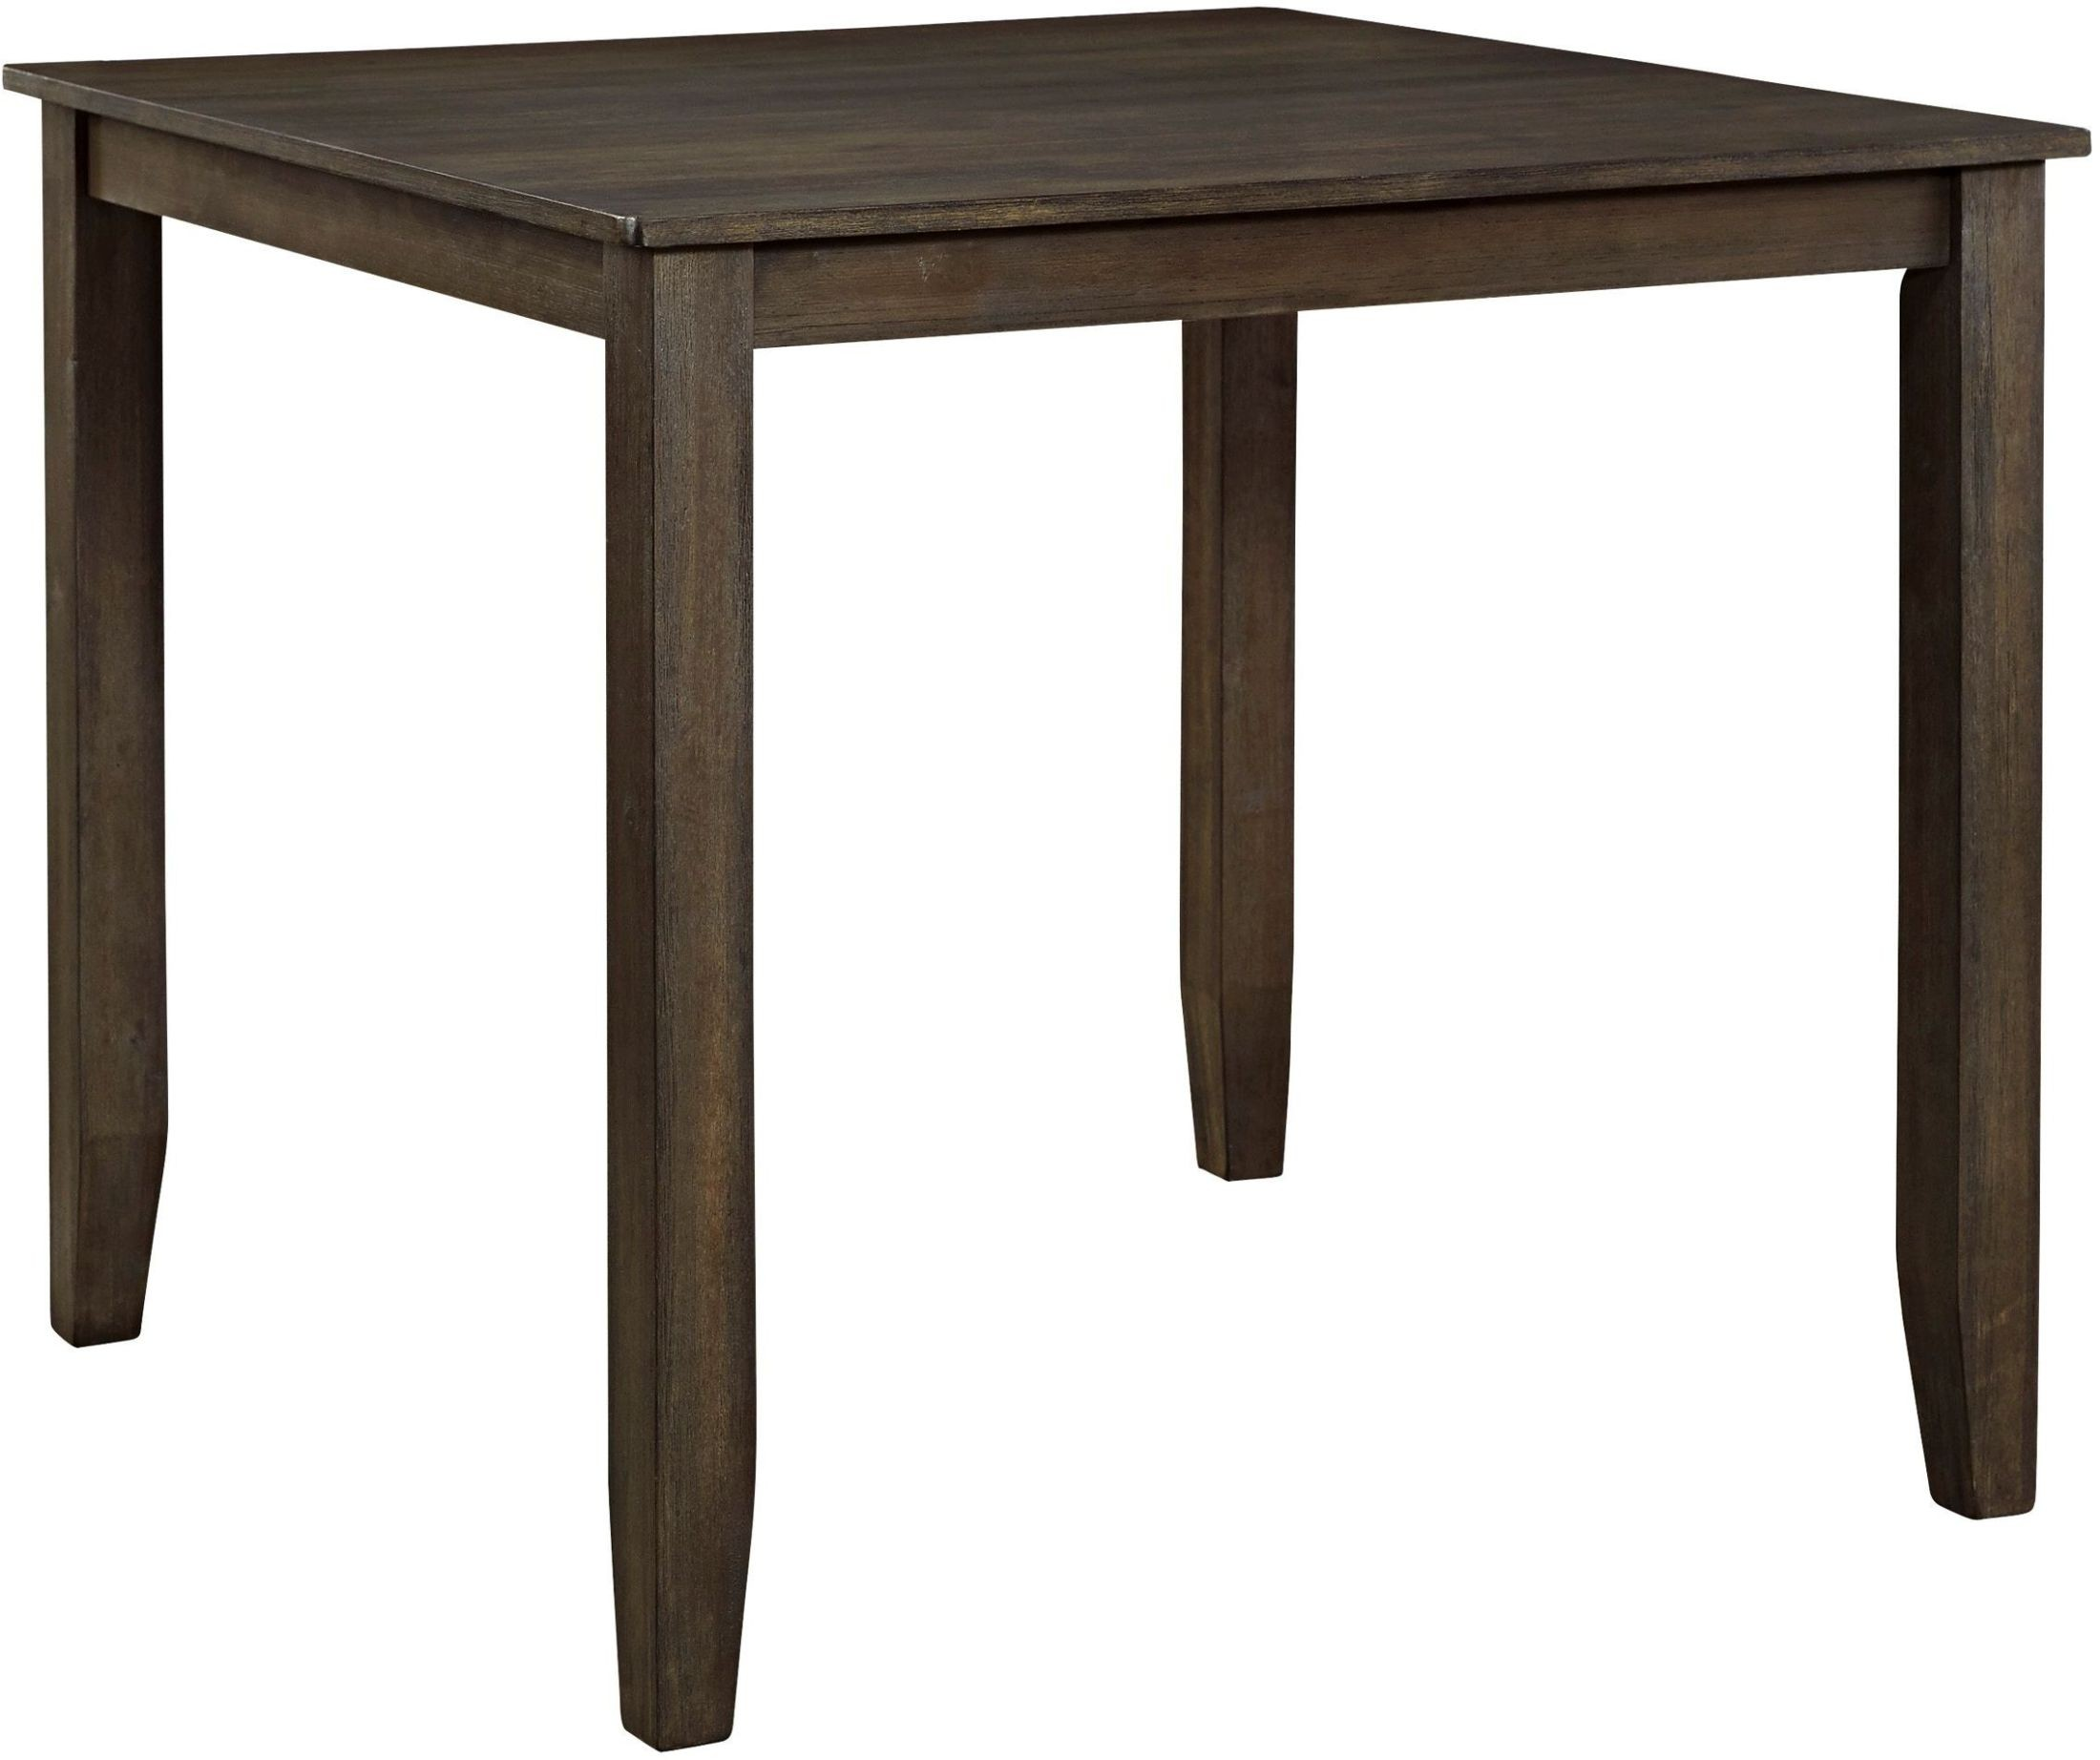 dresbar grayish brown square counter height dining table from ashley coleman furniture. Black Bedroom Furniture Sets. Home Design Ideas